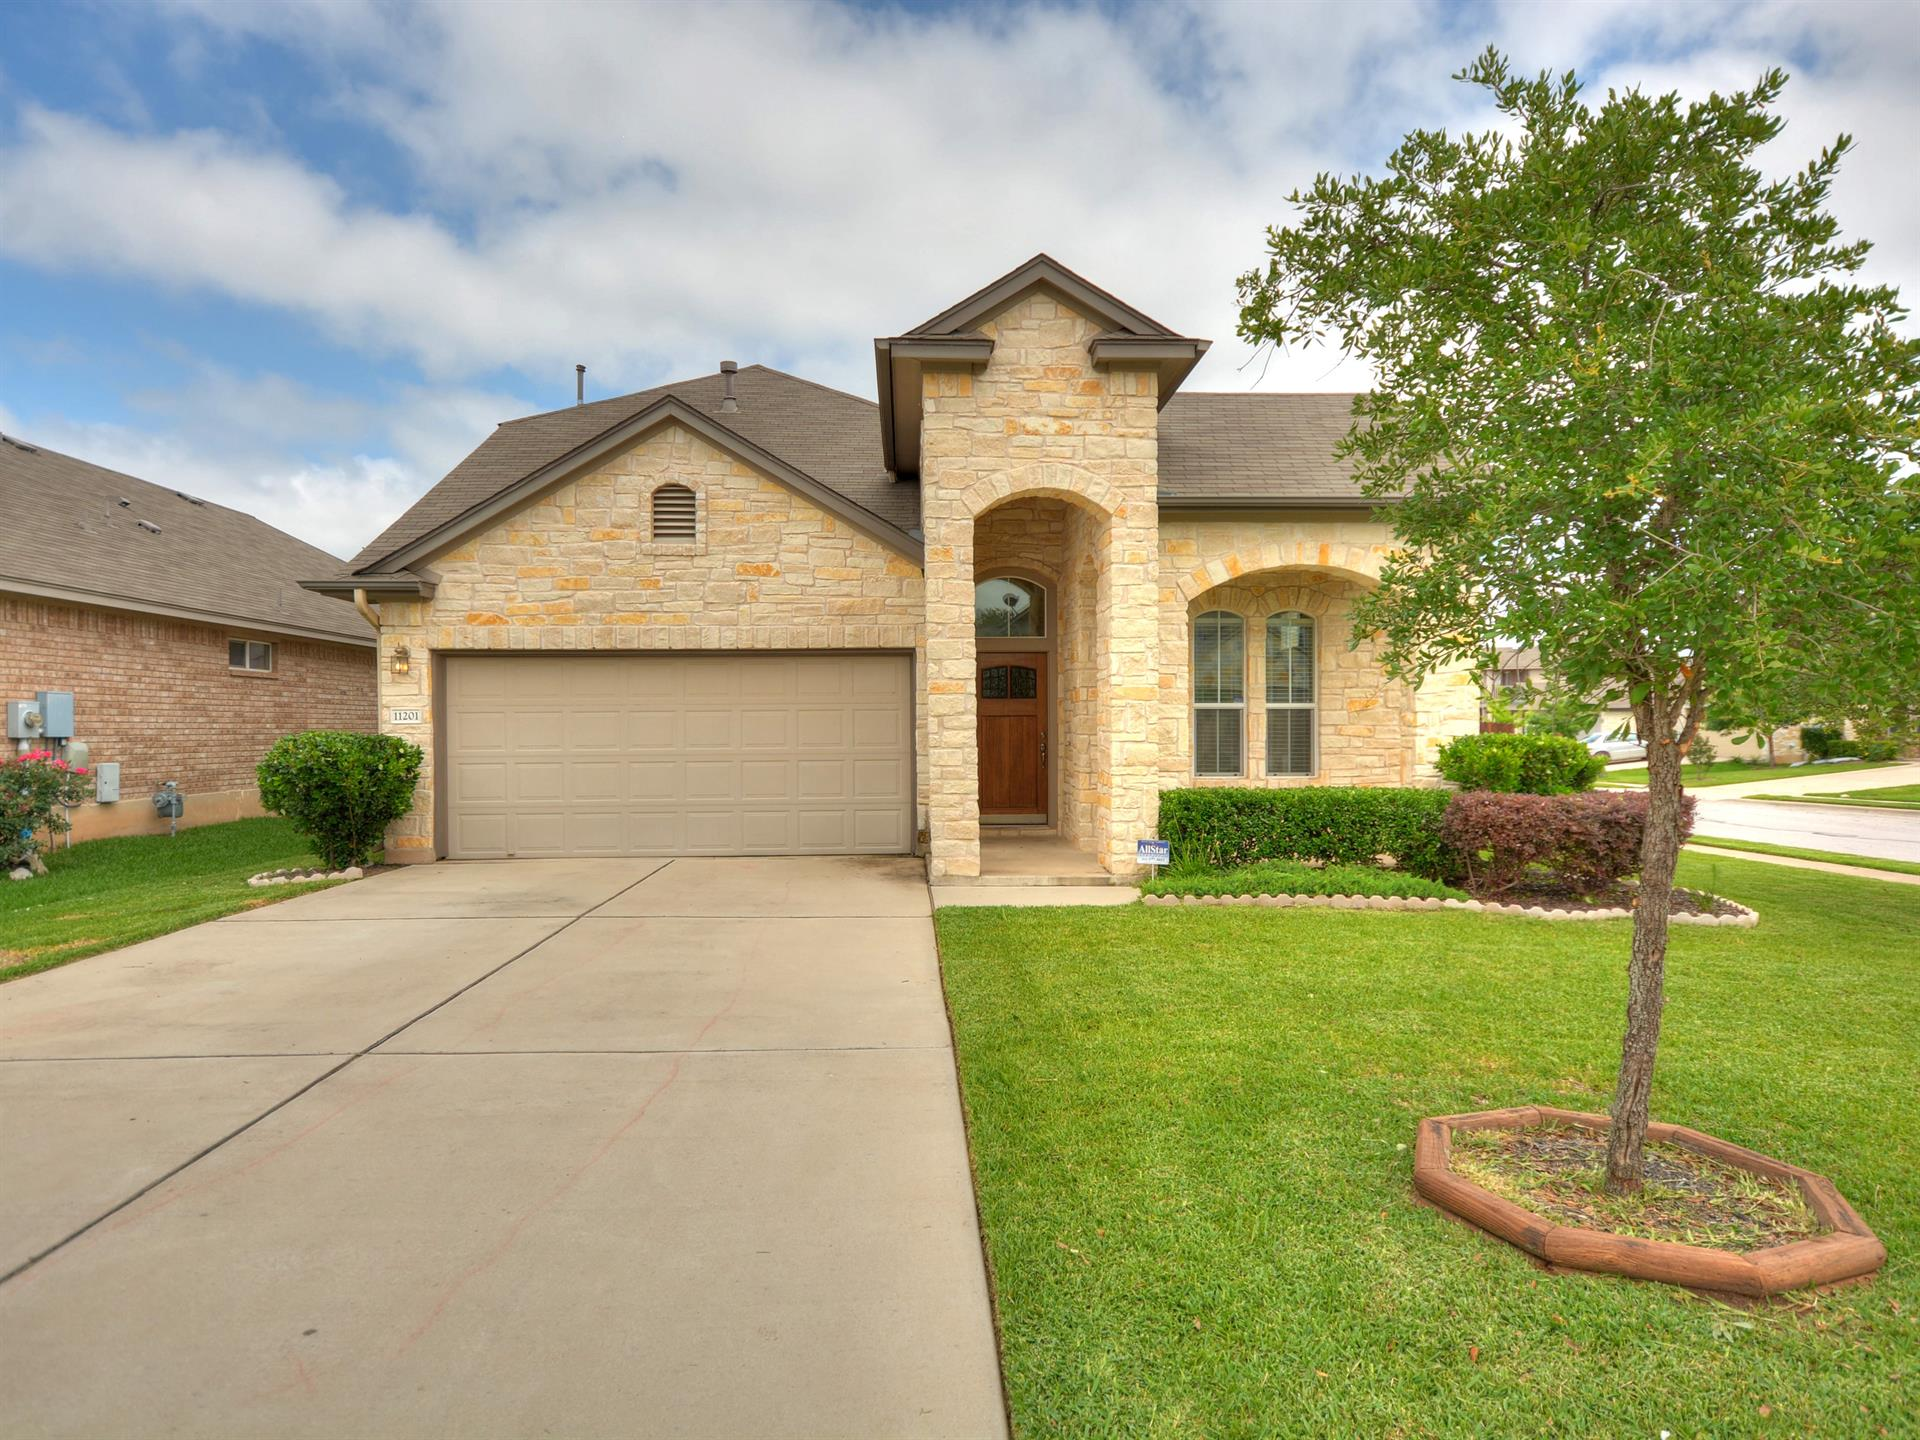 Additional photo for property listing at 11201 McKinney Spring Drive 11201 McKinney Spring Drive Austin, Texas 78717 Estados Unidos